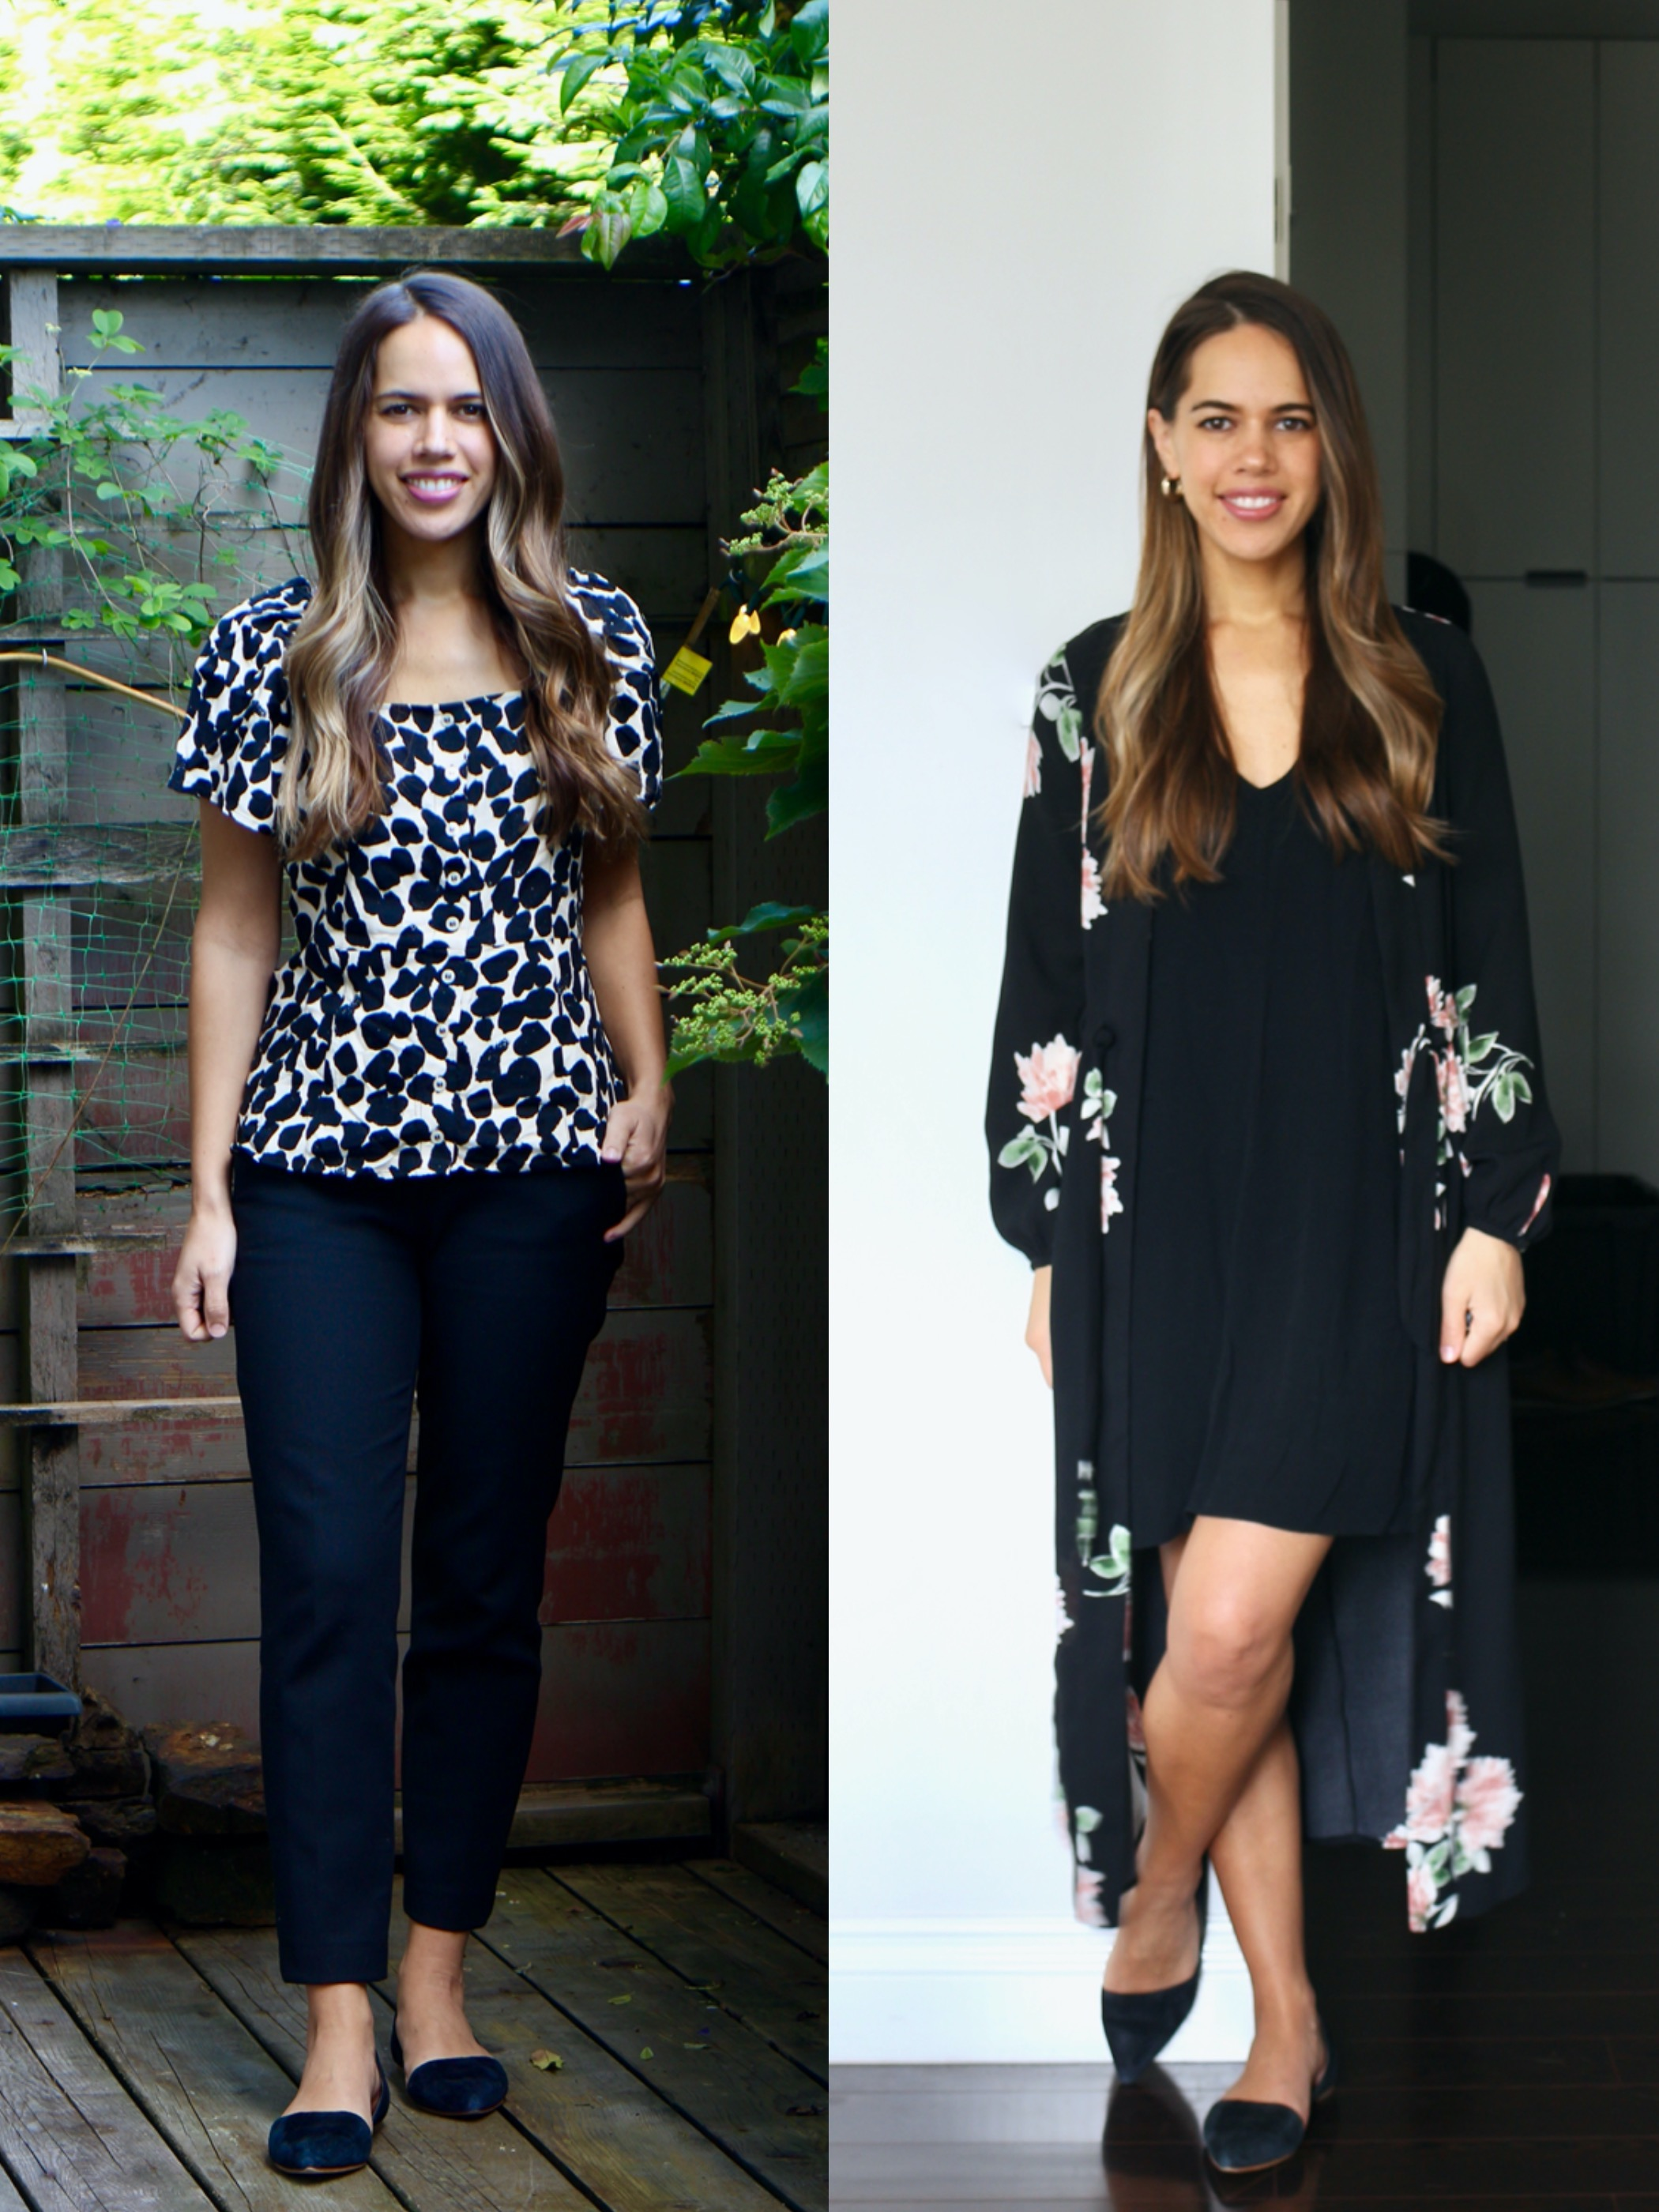 Jules in Flats - June Outfits Week 3 (Business Casual Workwear on a Budget)